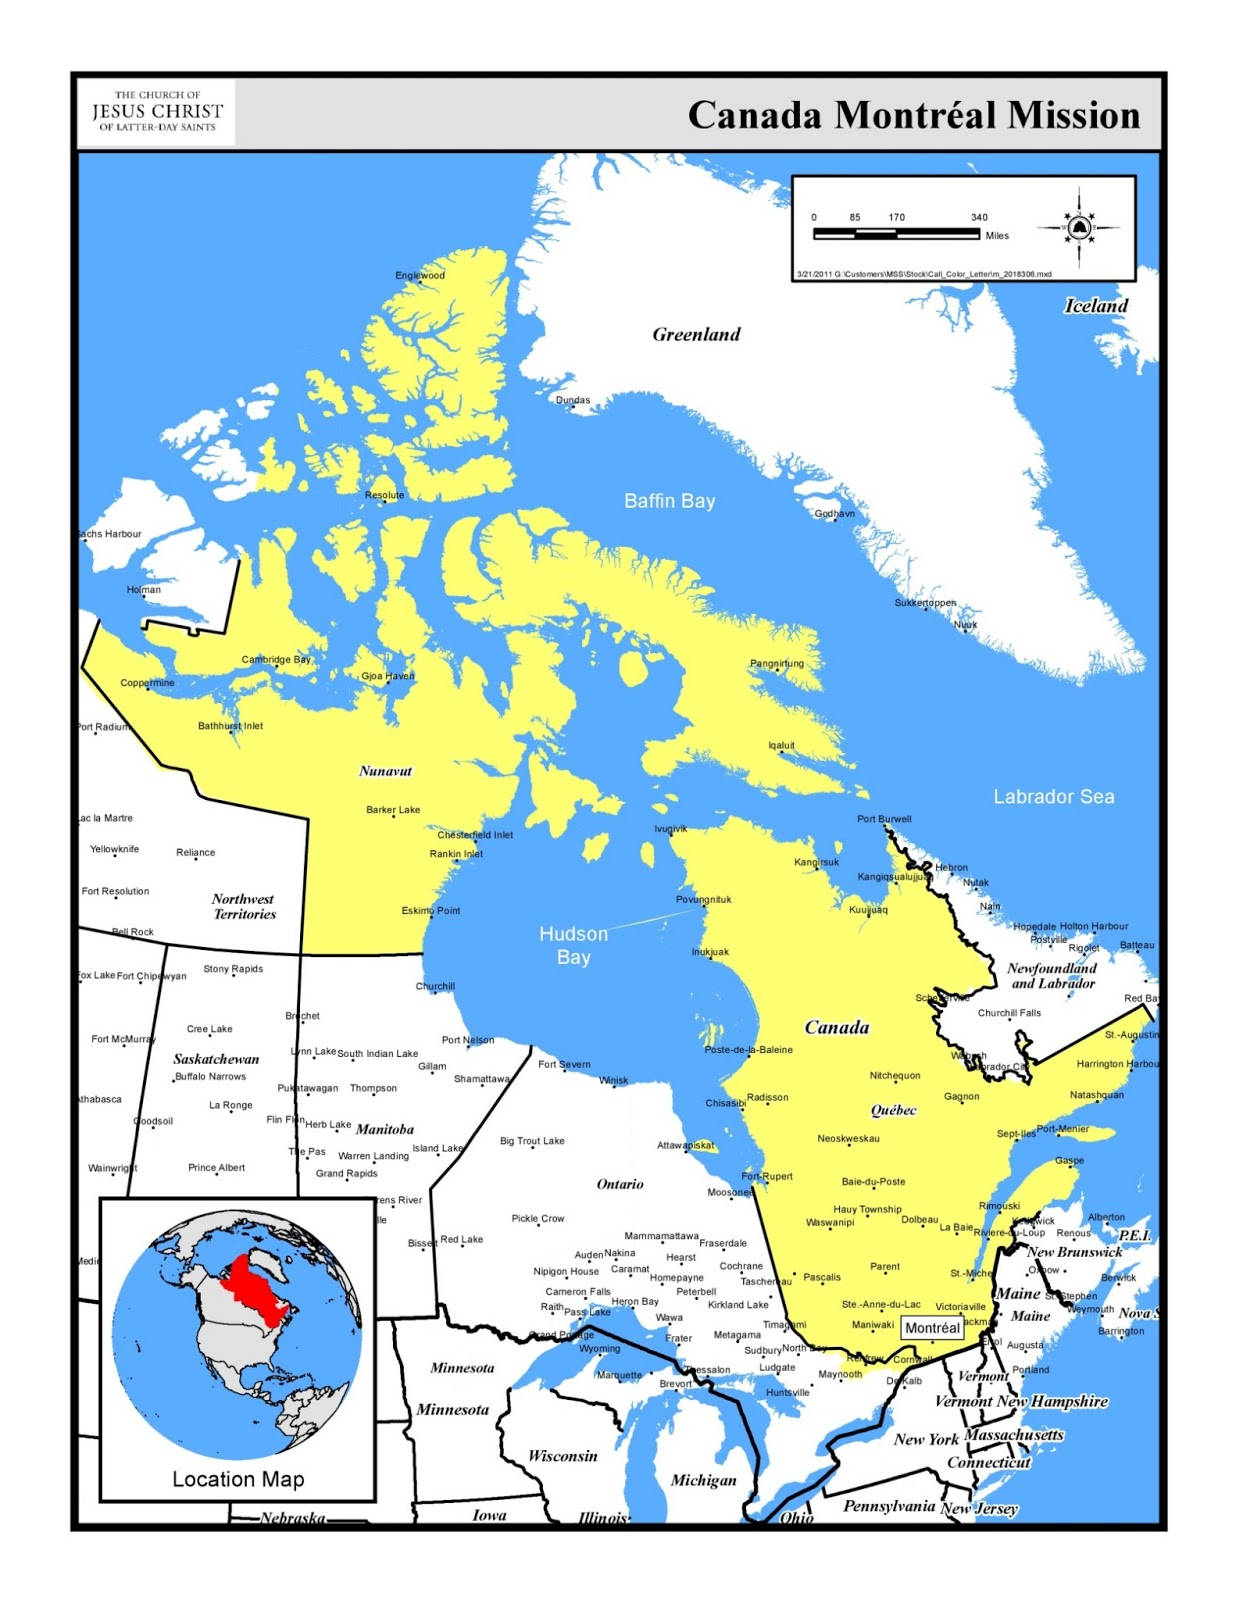 (and click on the map it'll magnify). celina ferguson canada montreal mission map